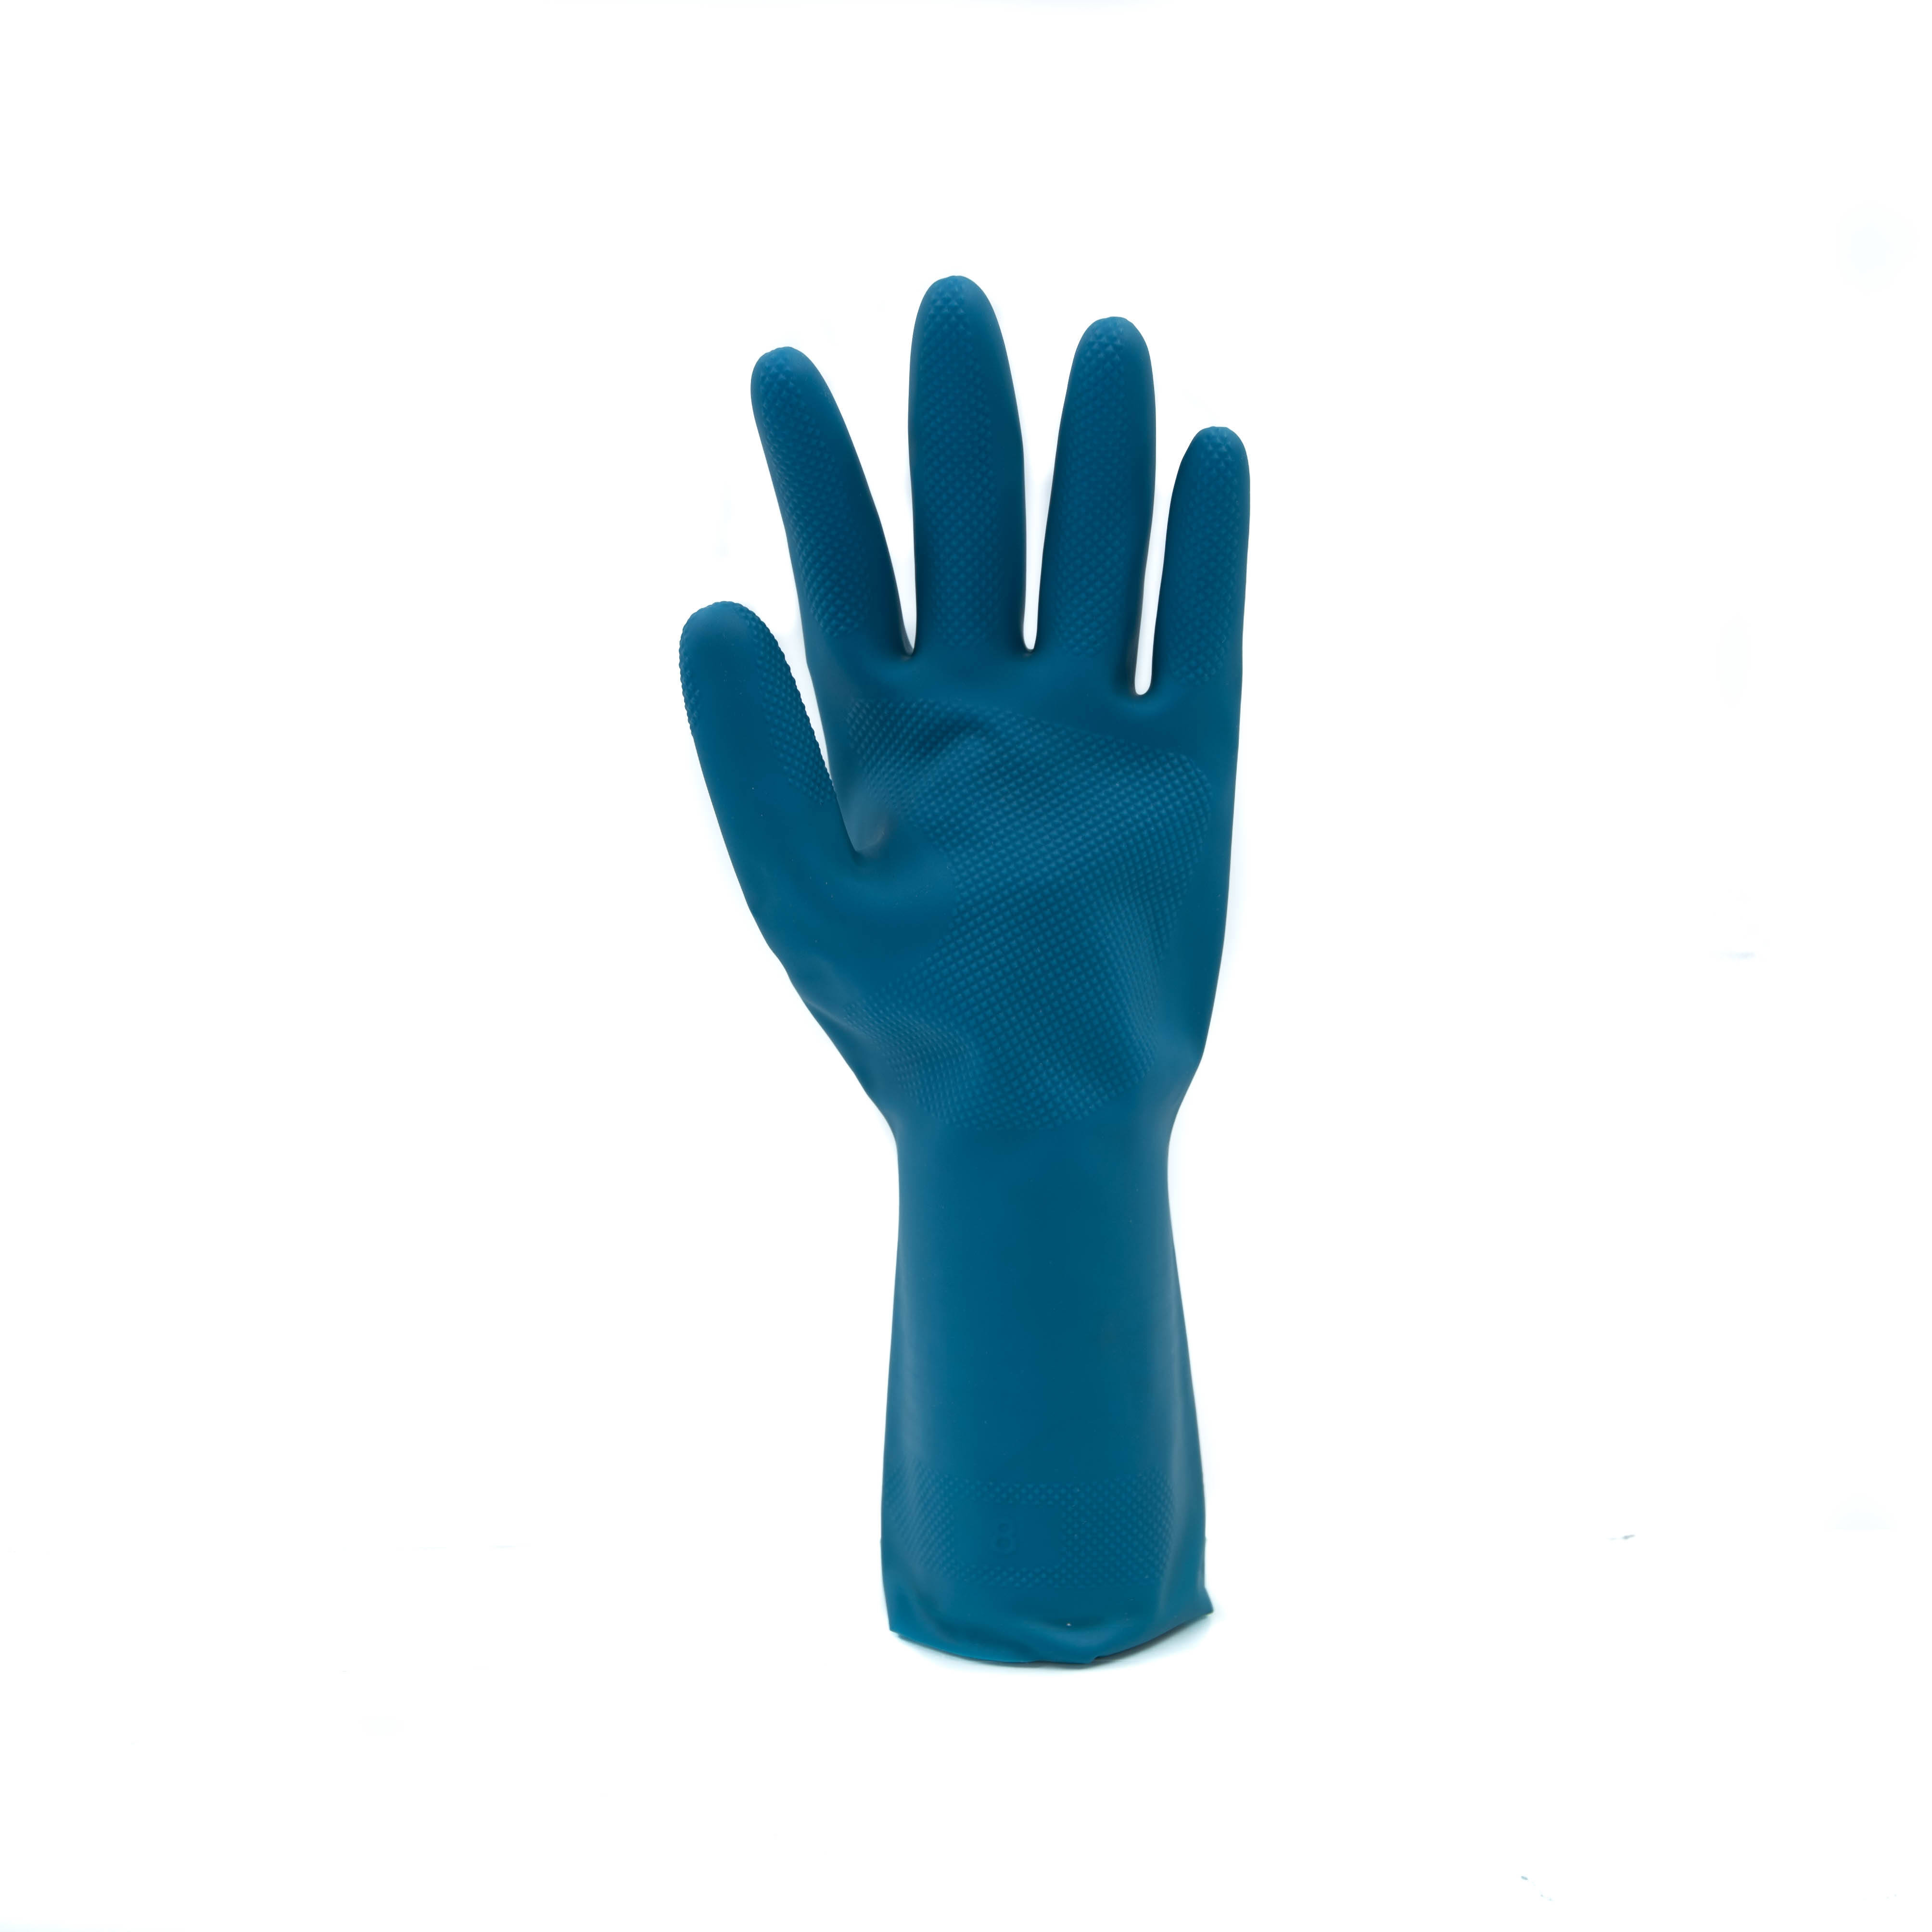 Food grade blue unlined dipped rubber gloves guantes de goma de malasia for food manufacturing fish filleting fisheries canning